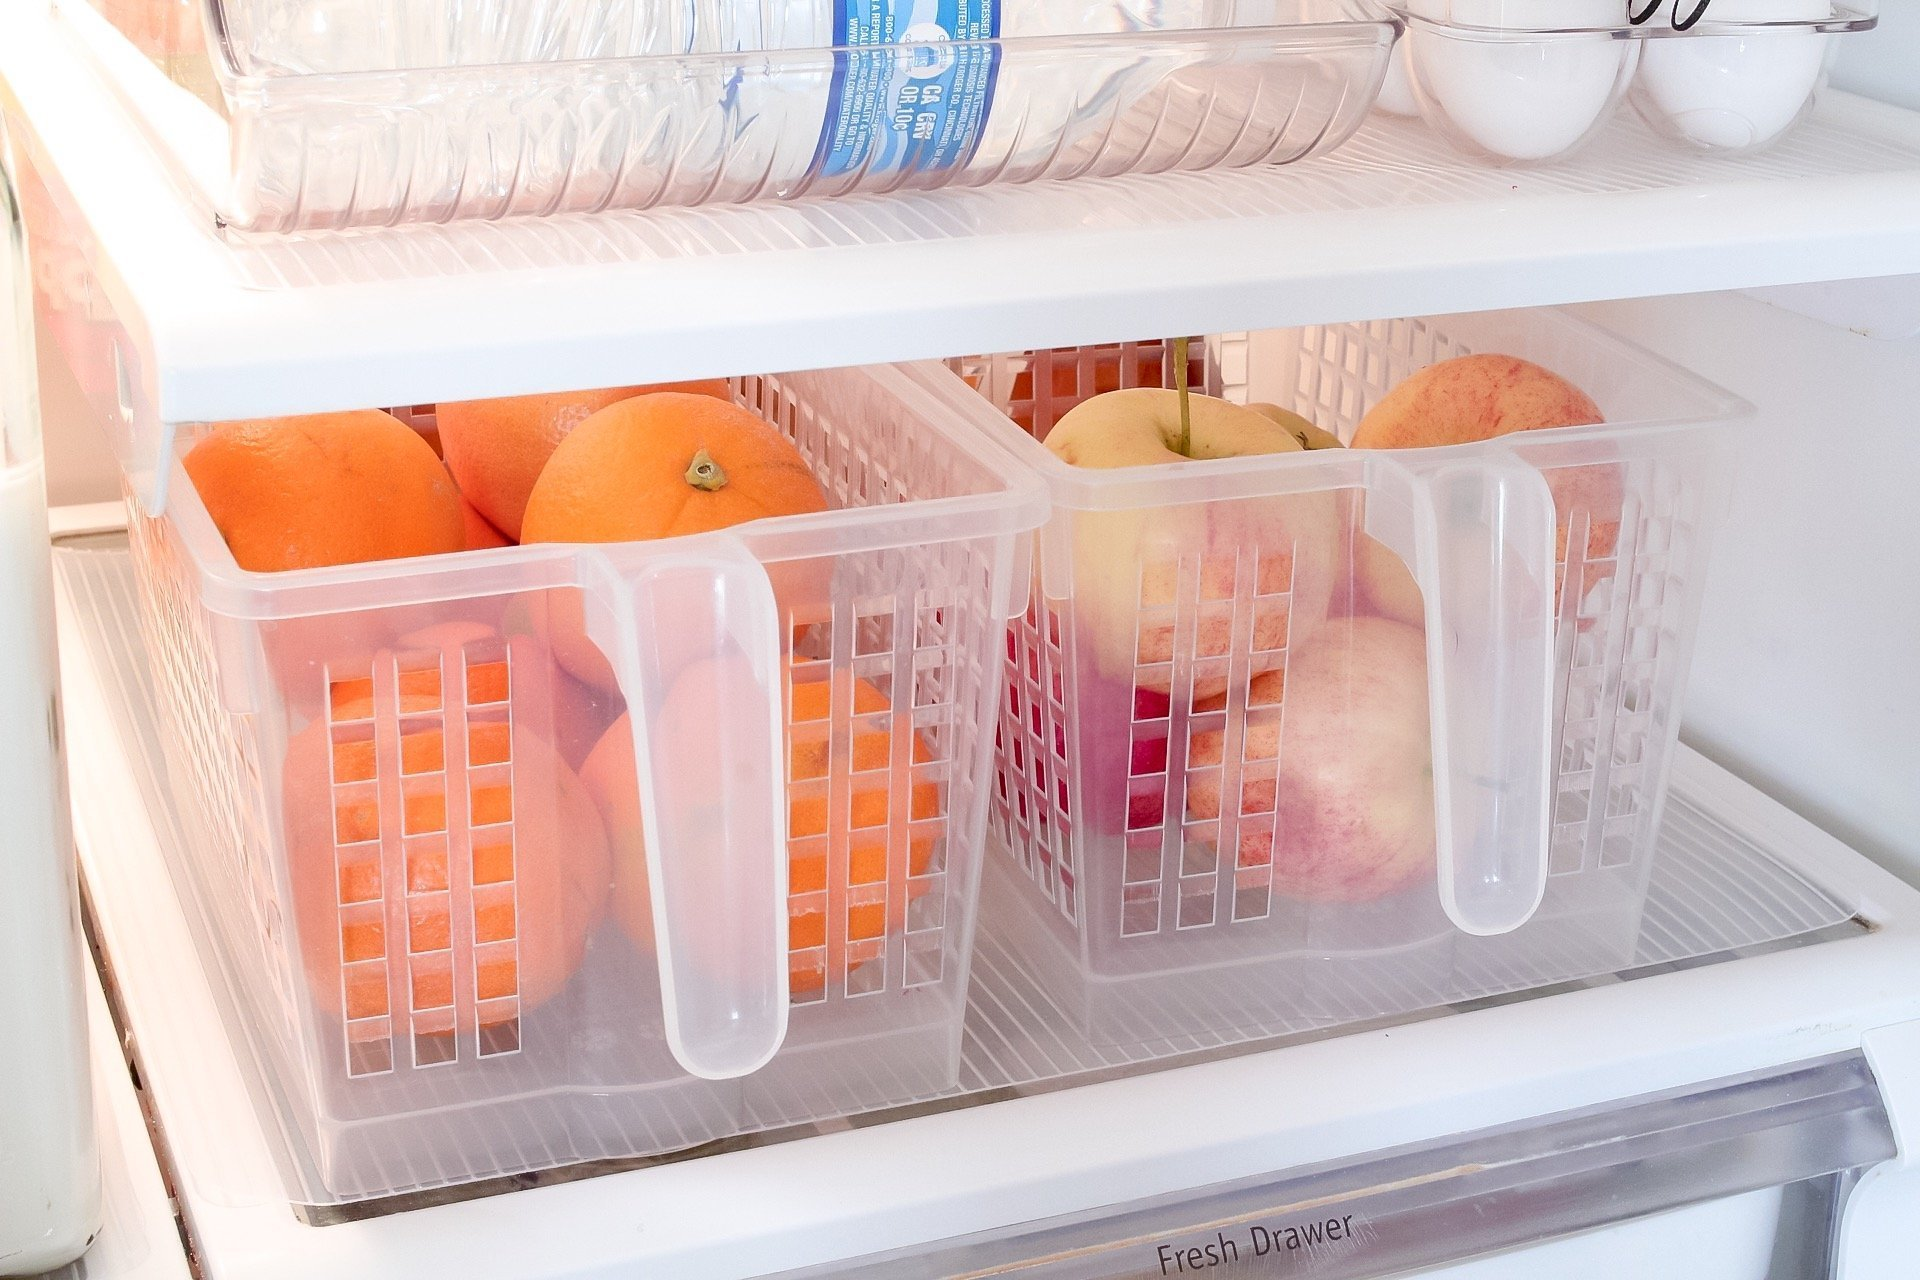 How To Clean And Organize The Fridge + FREE Printable Fridge Labels